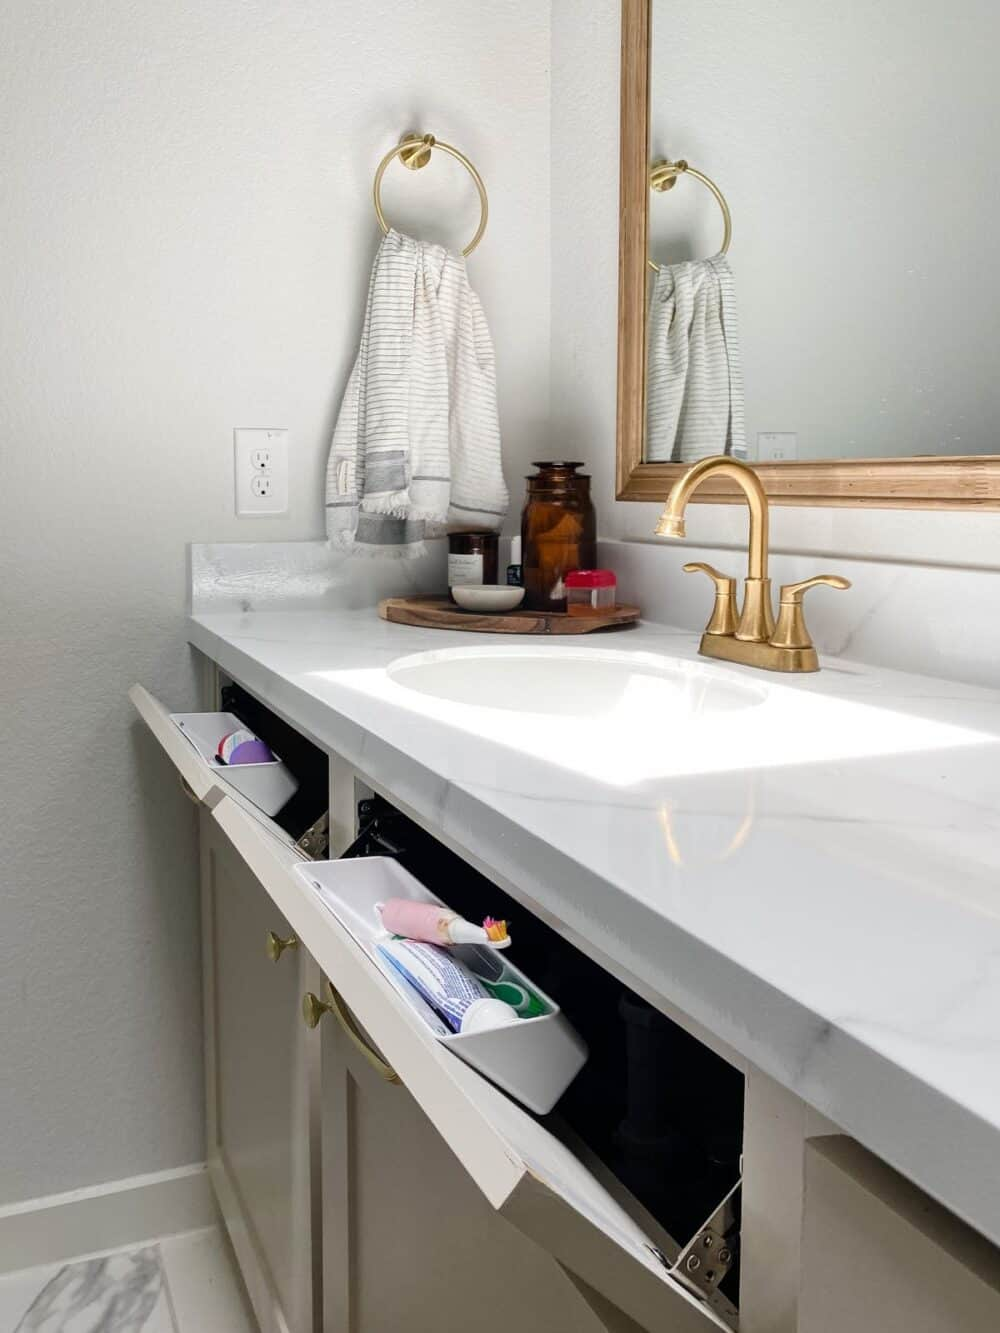 Vanity with tilt-down drawer fronts